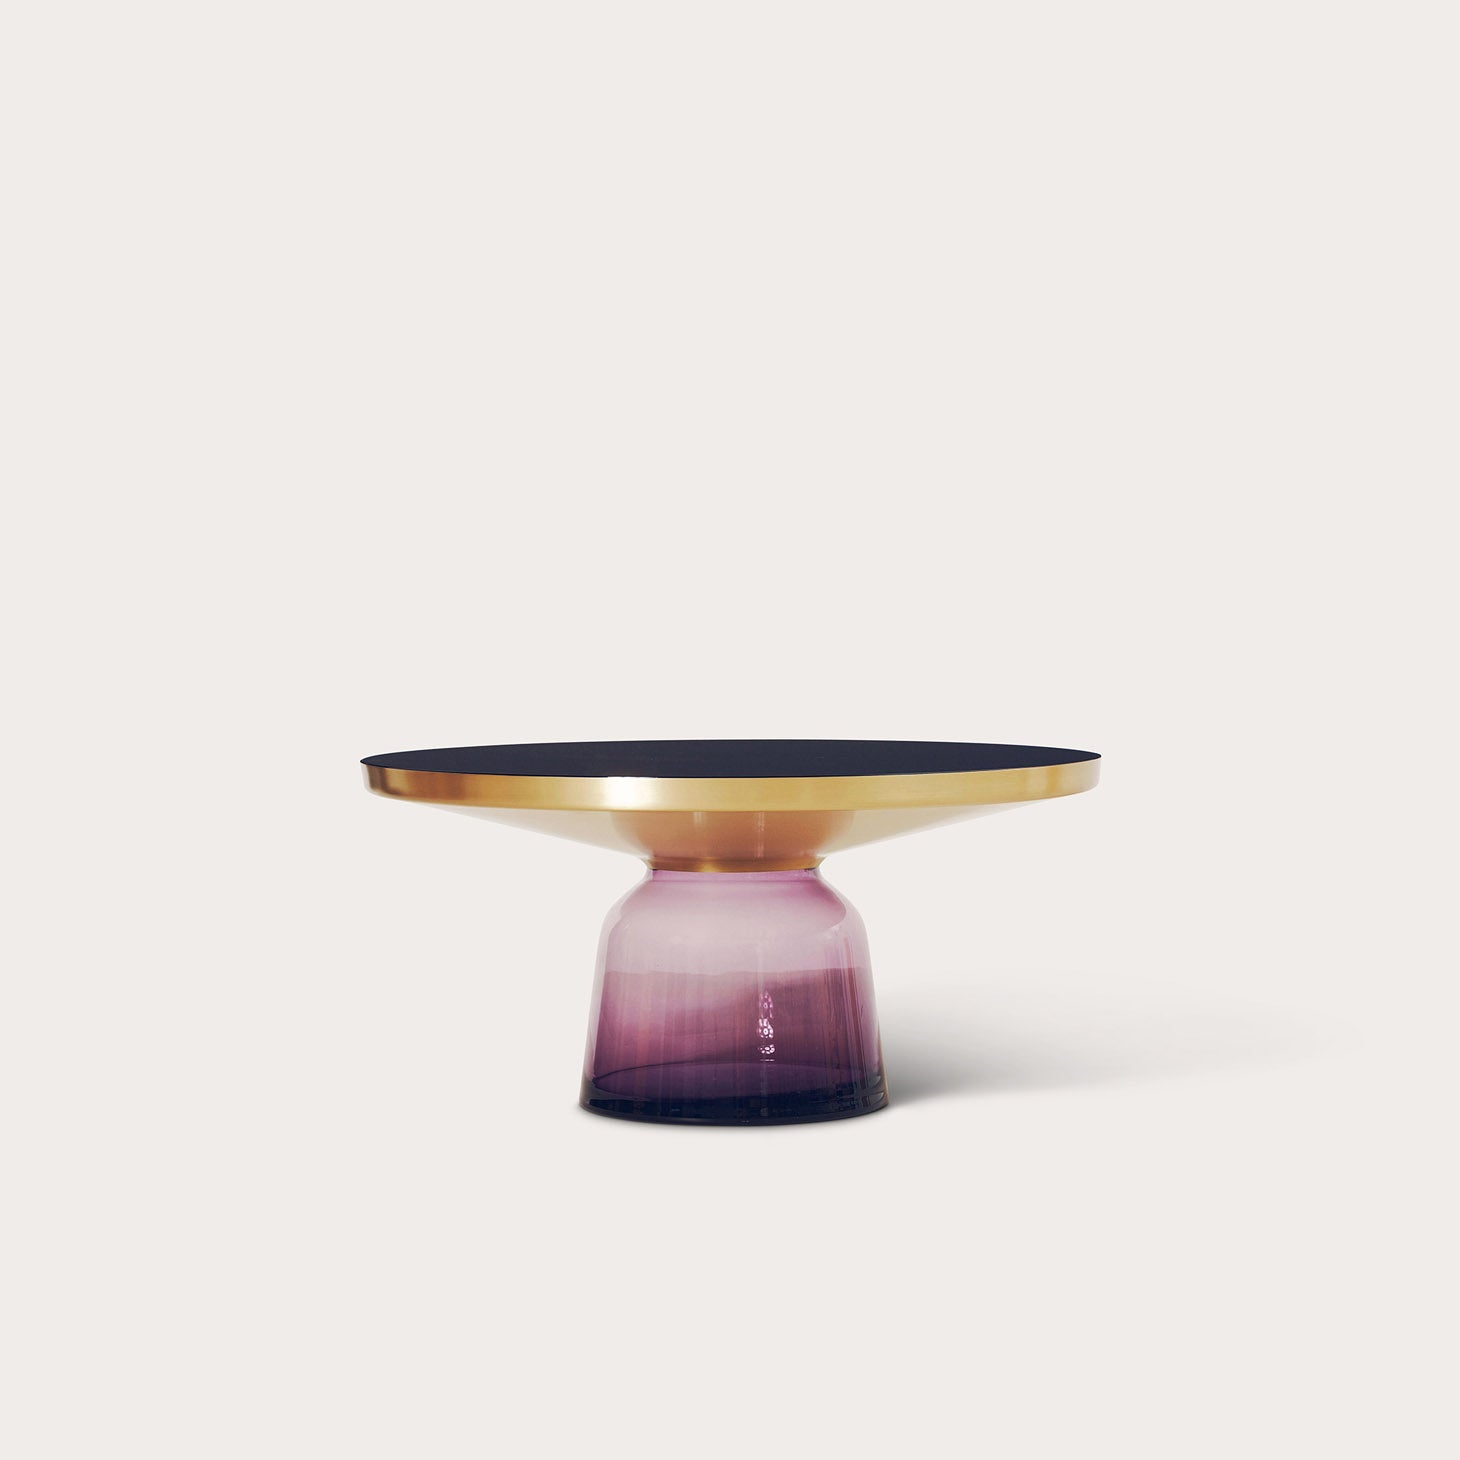 Bell Table Tables Sebastian Herkner Designer Furniture Sku: 001-230-10167